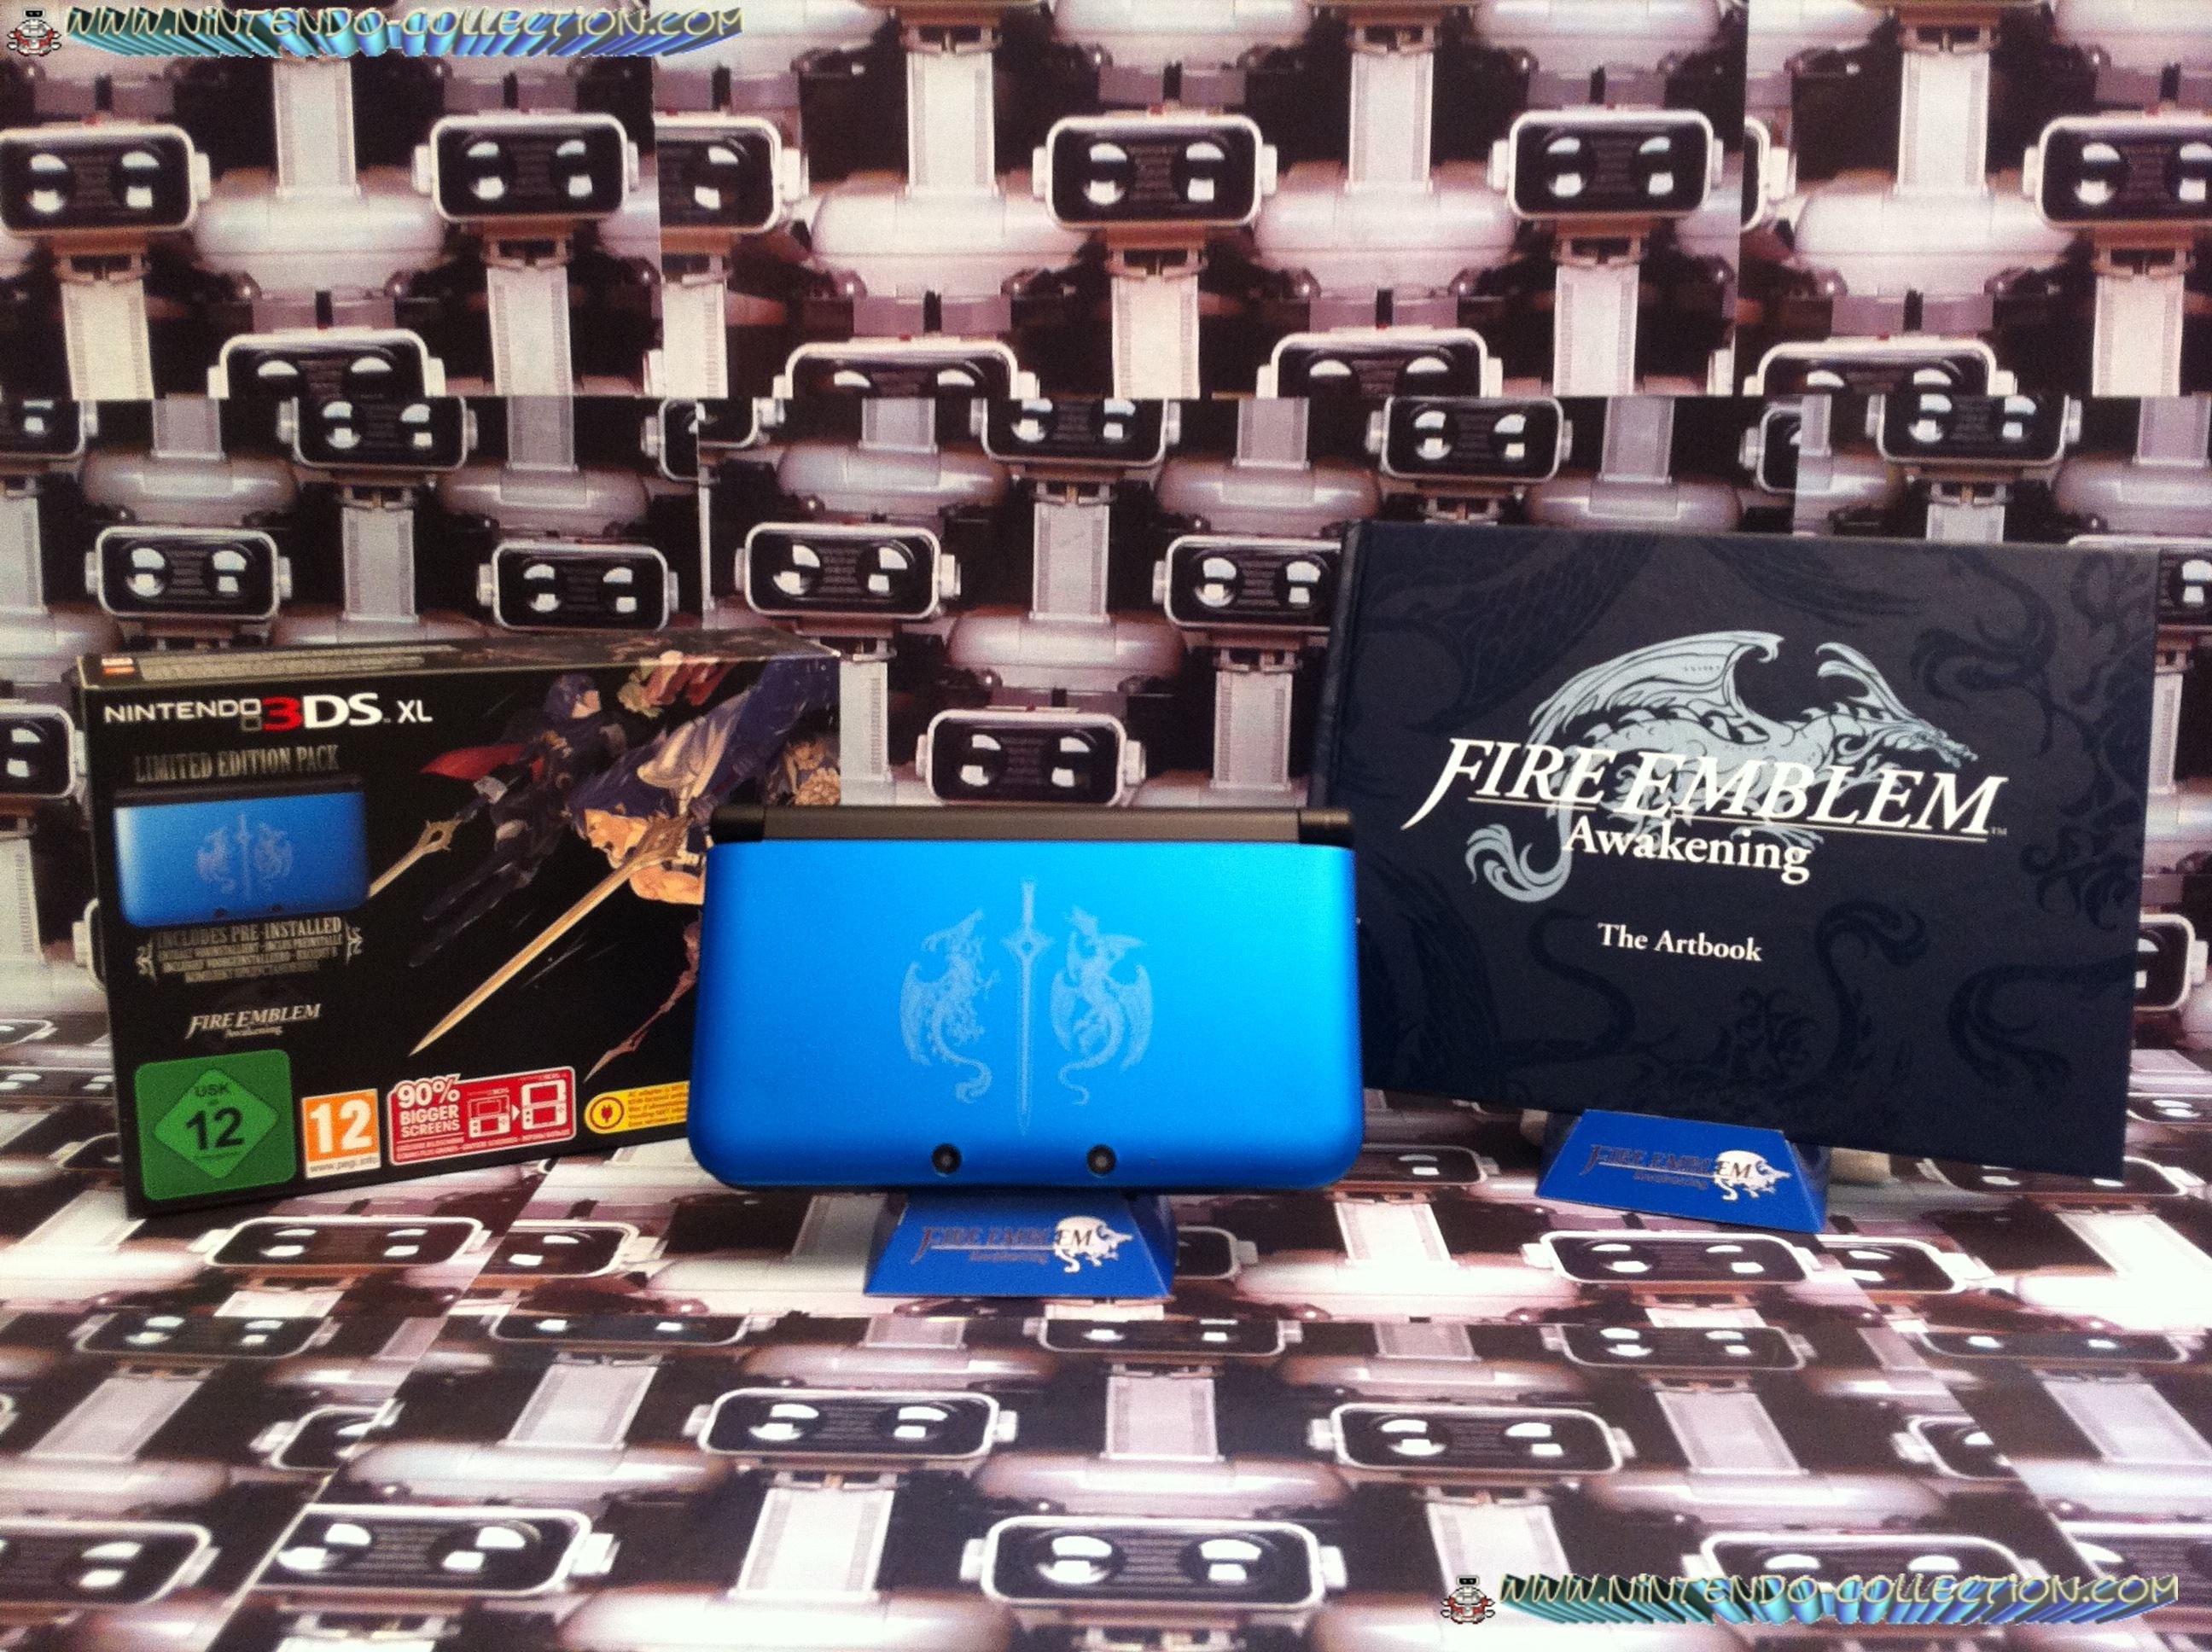 www.nintendo-collection.com - Nintendo 3DS XL LL Fire Emblem edition collector + Artbook